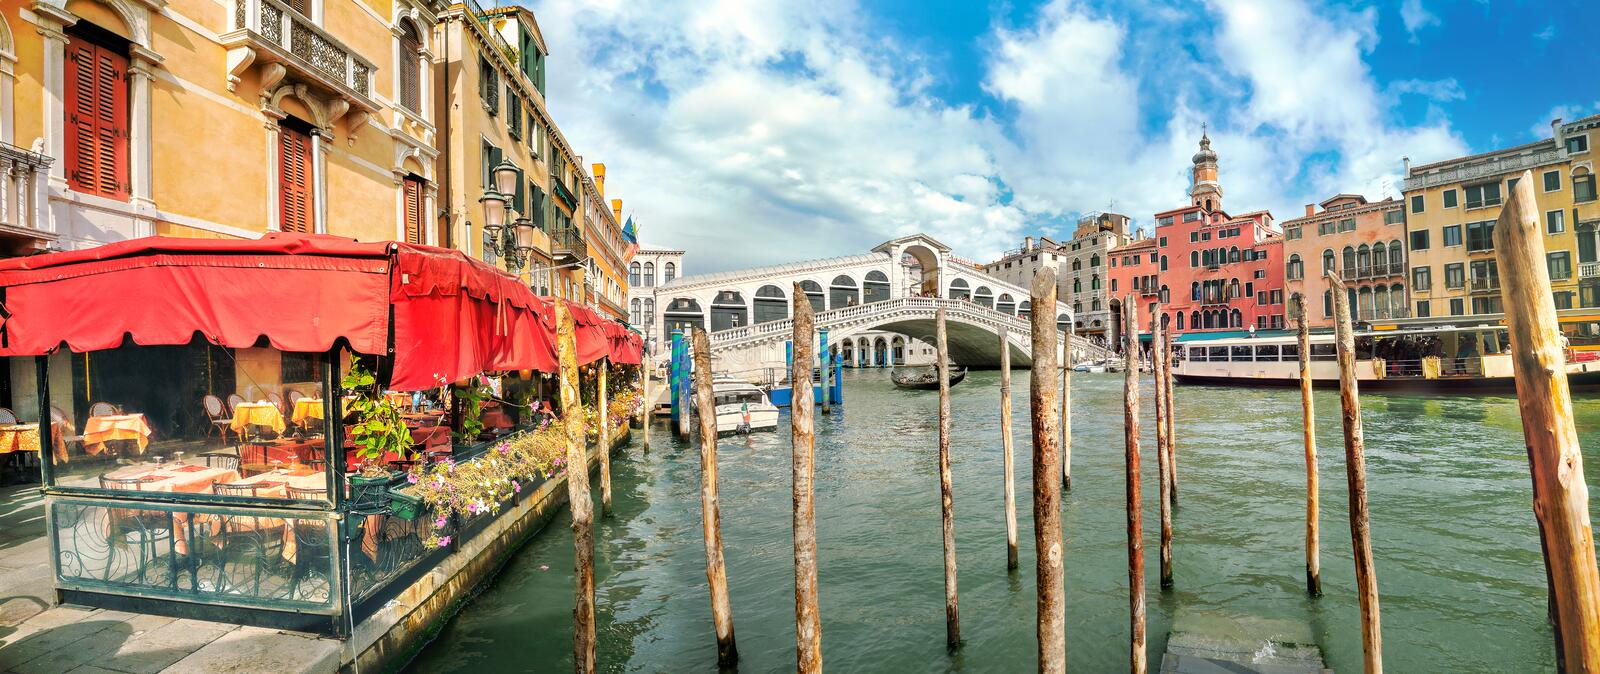 Cityscape with Grand Canal and Rialto Bridge at sunny day in Venice. Italy royalty free stock images